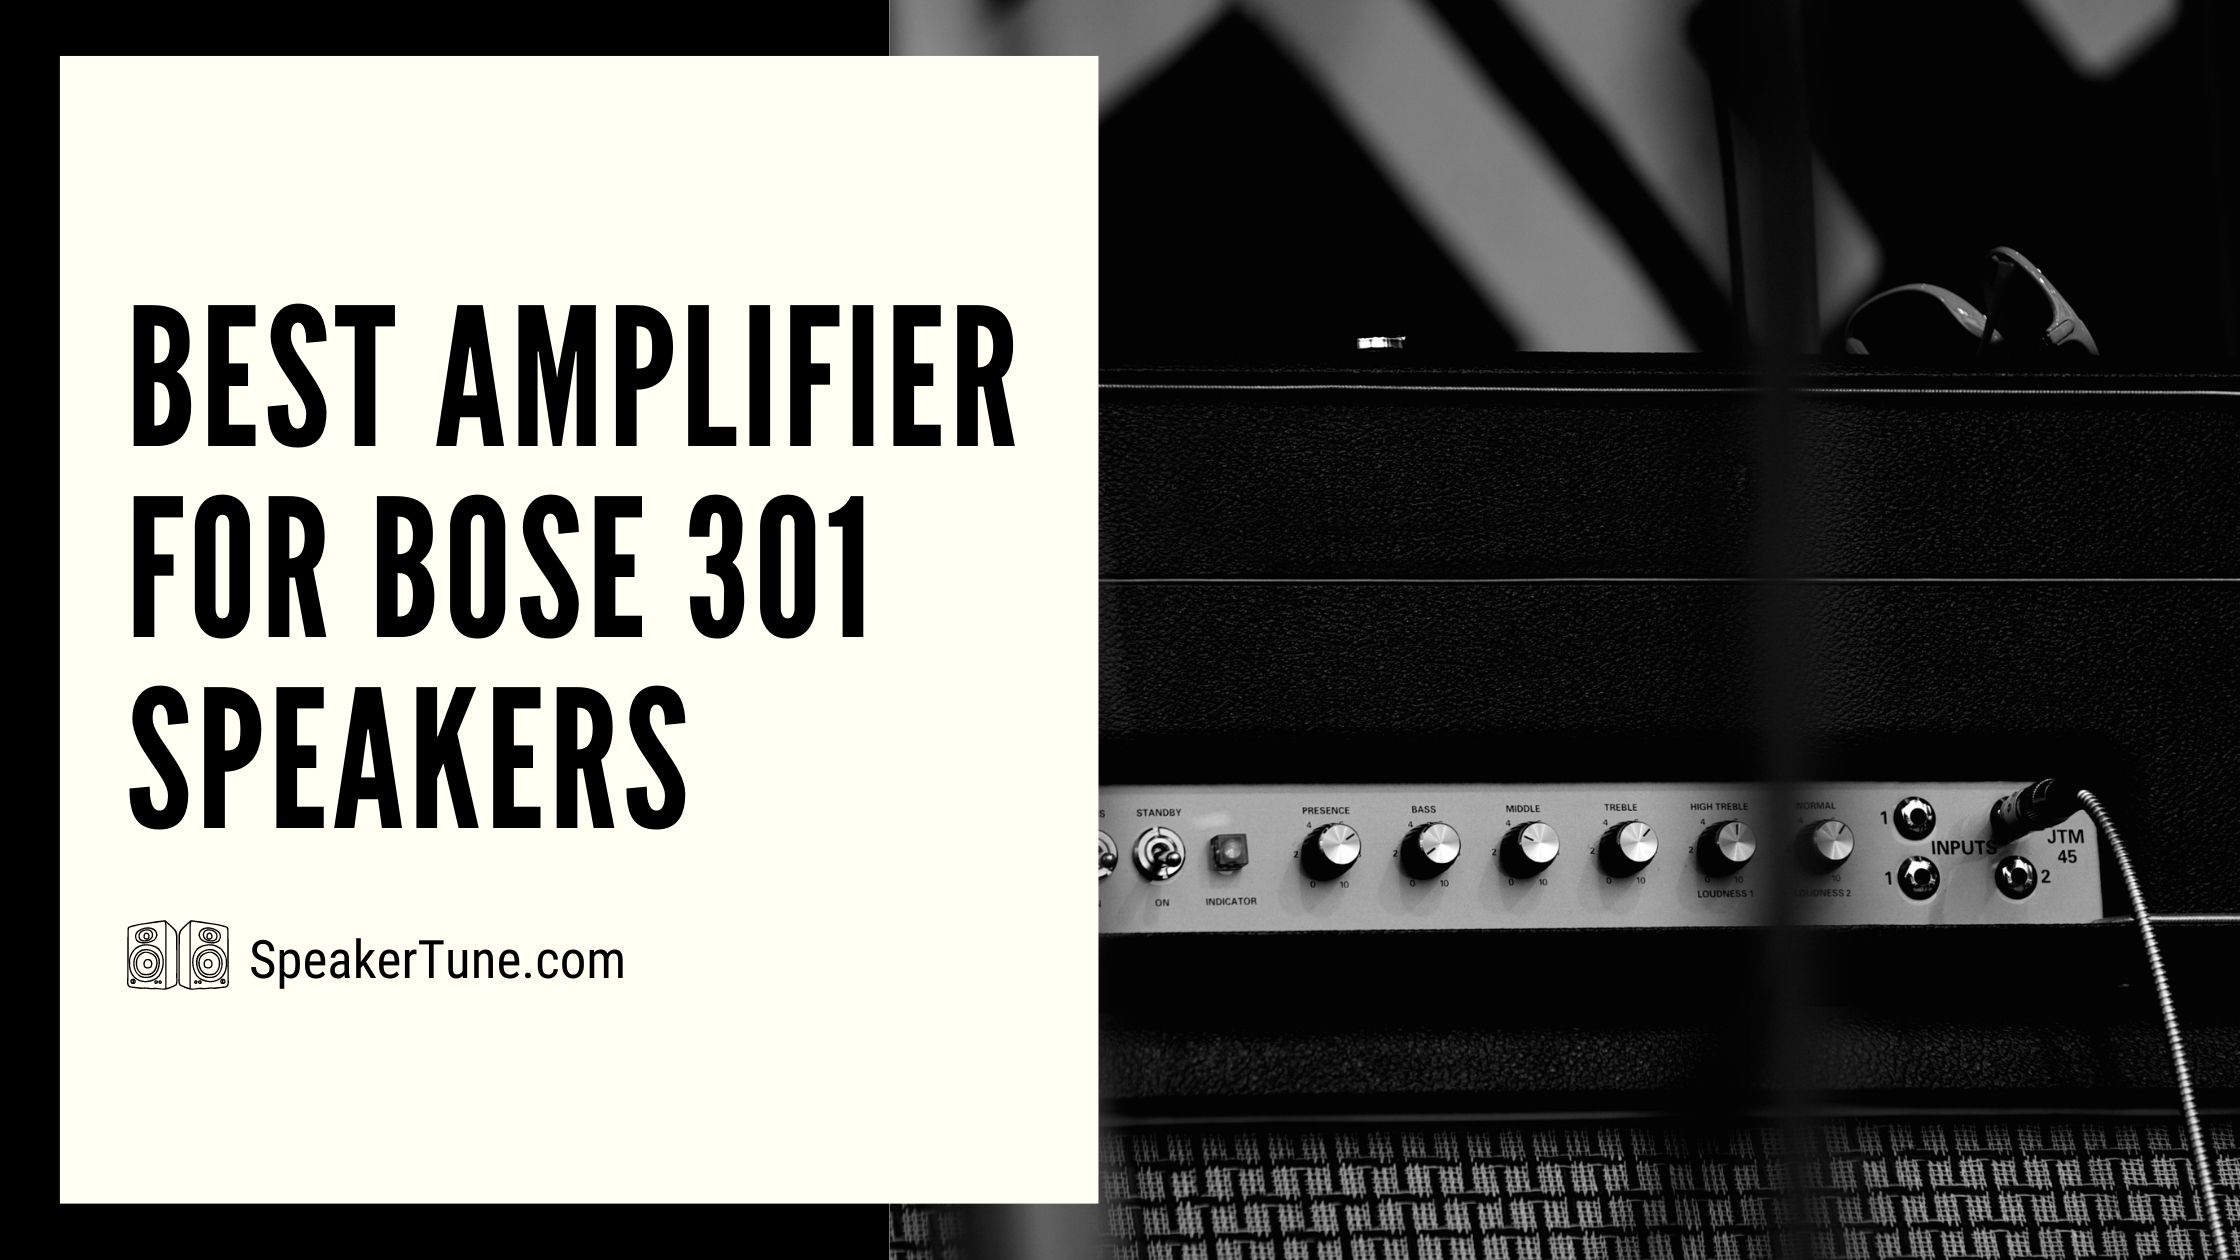 ST-Best-Amplifier-for-Bose-301-Speakers